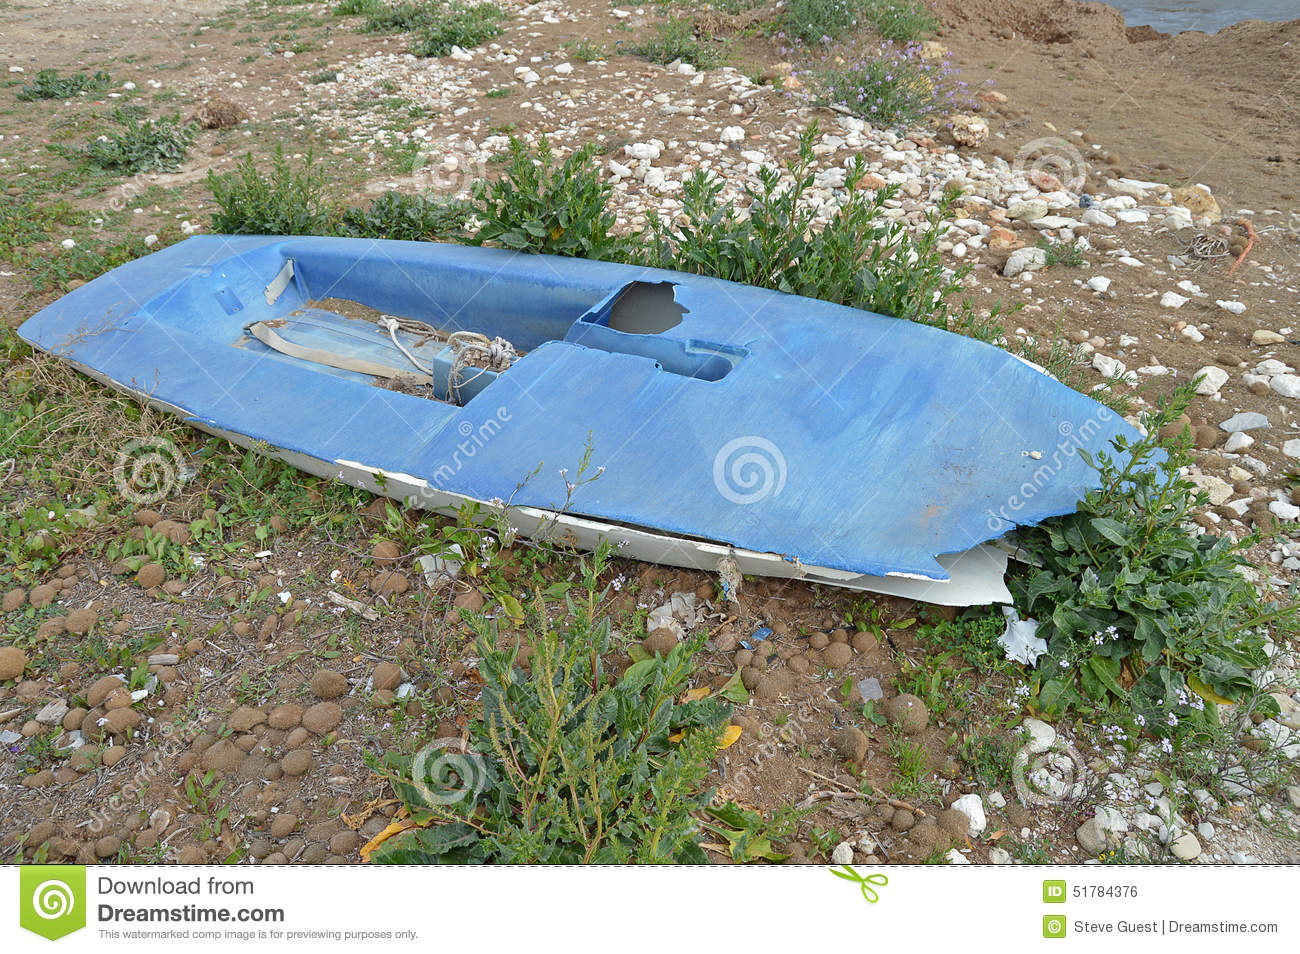 A Topper Sailing Dinghy Destroyed - Sail Boat Stock Photo - Image: 51784376